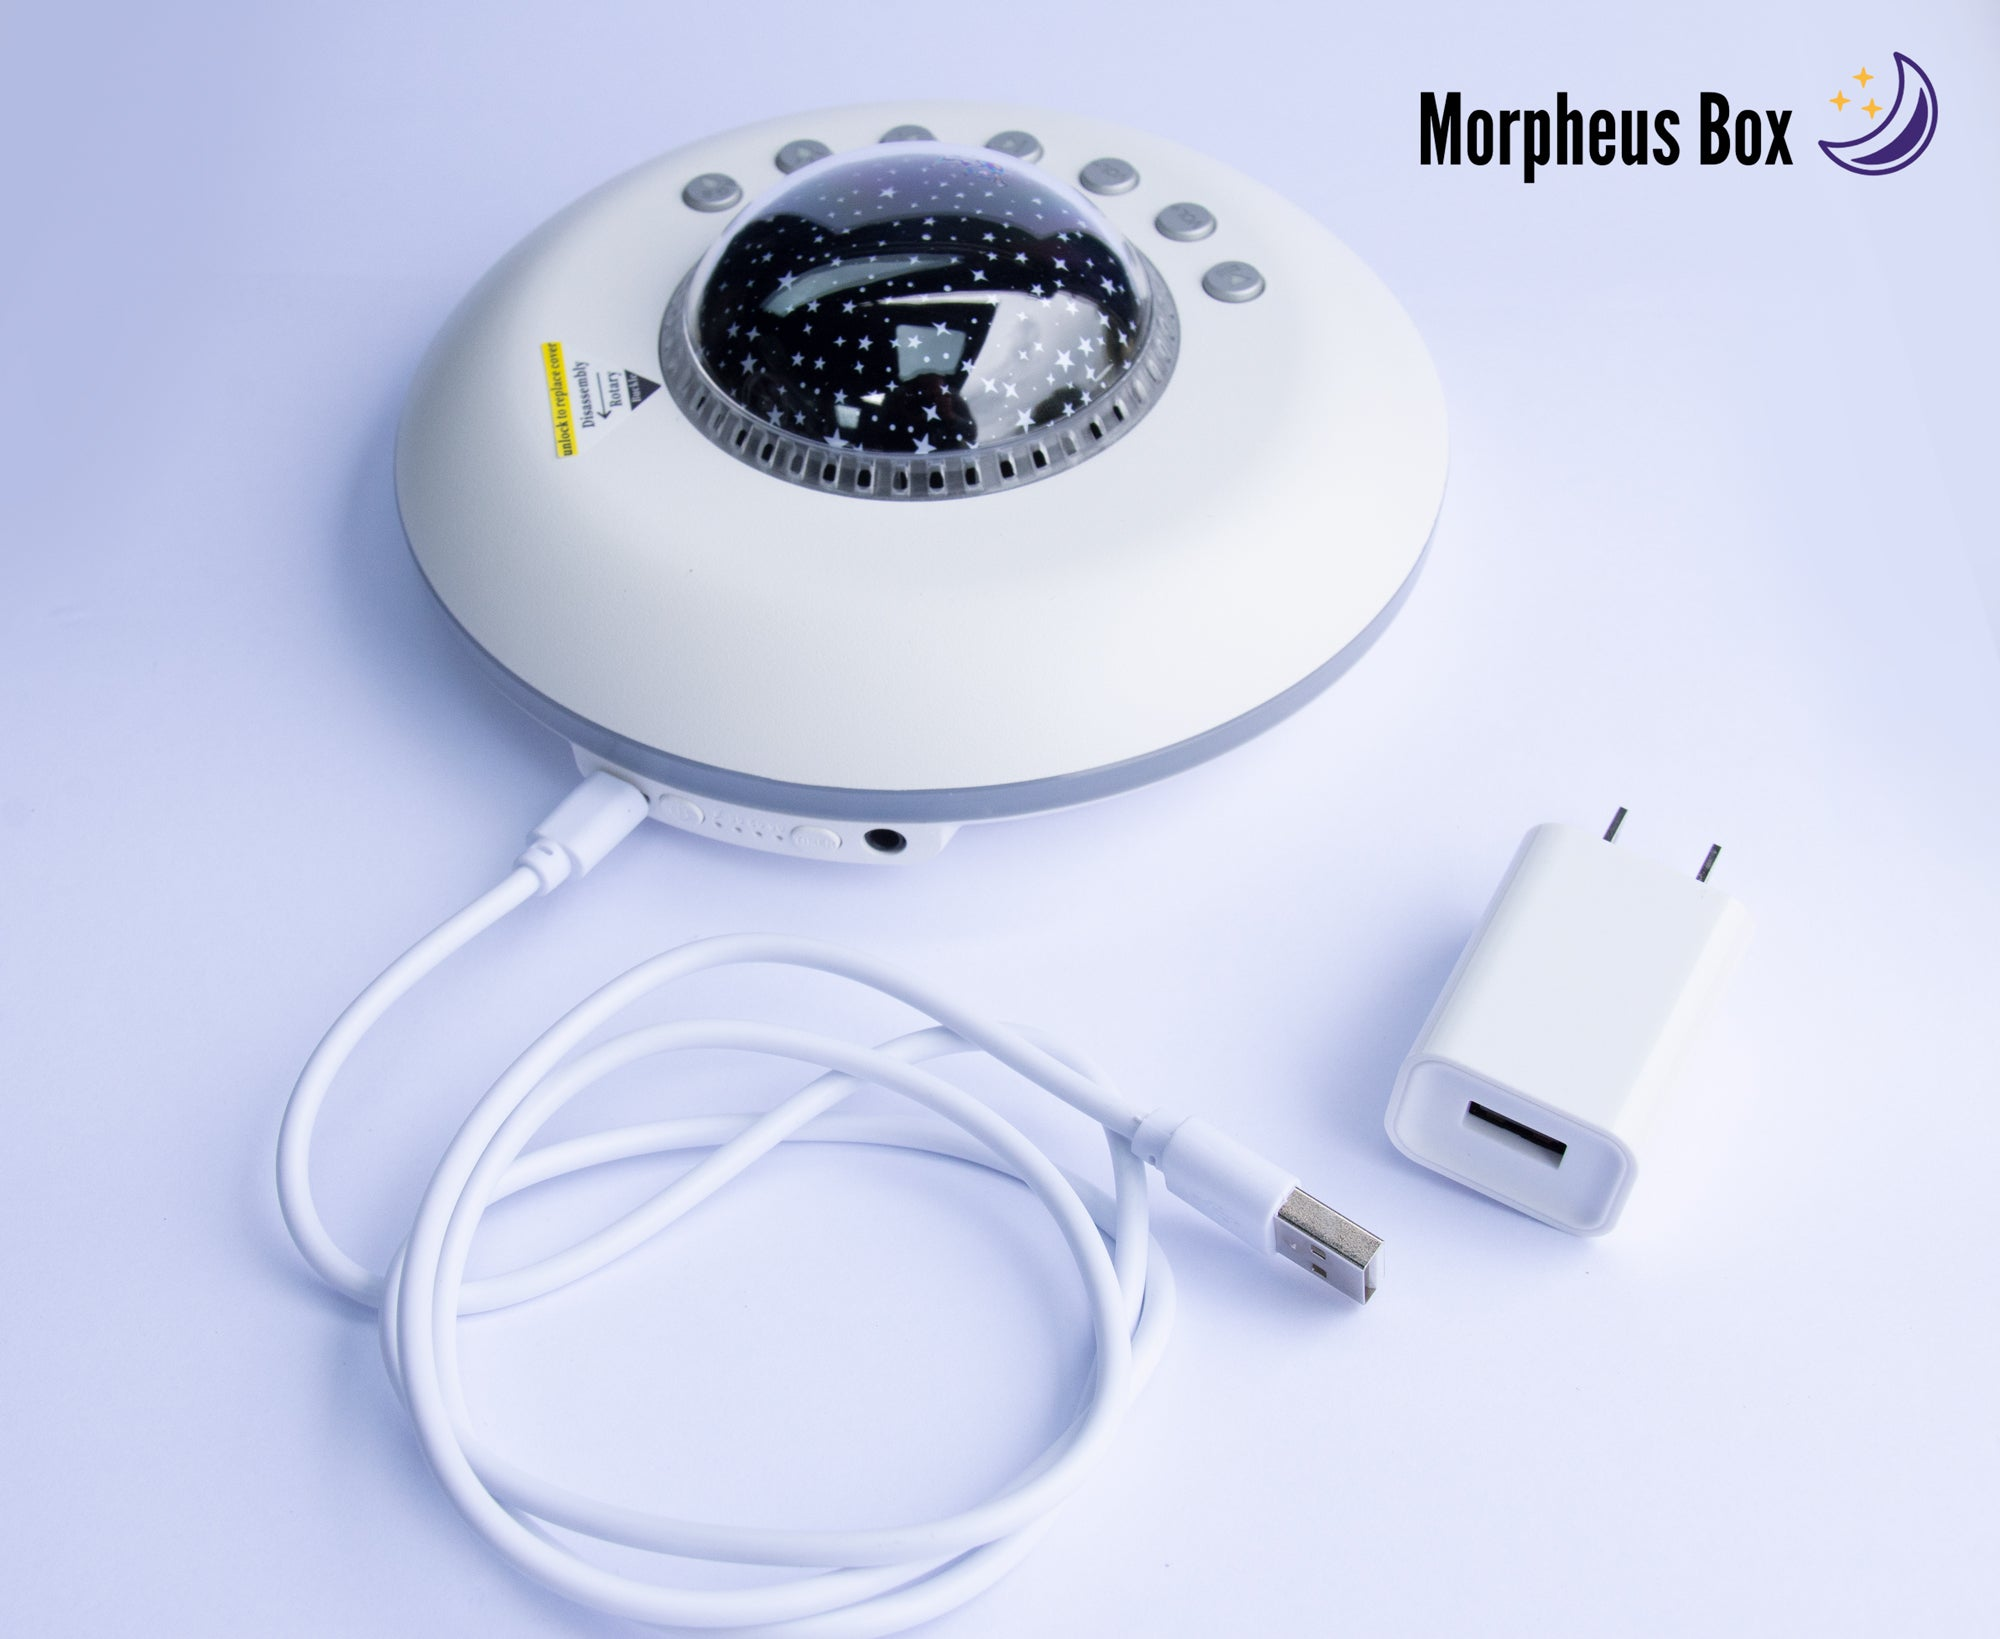 Morpheus Box Sleep Sound Machine - Morpheus Box